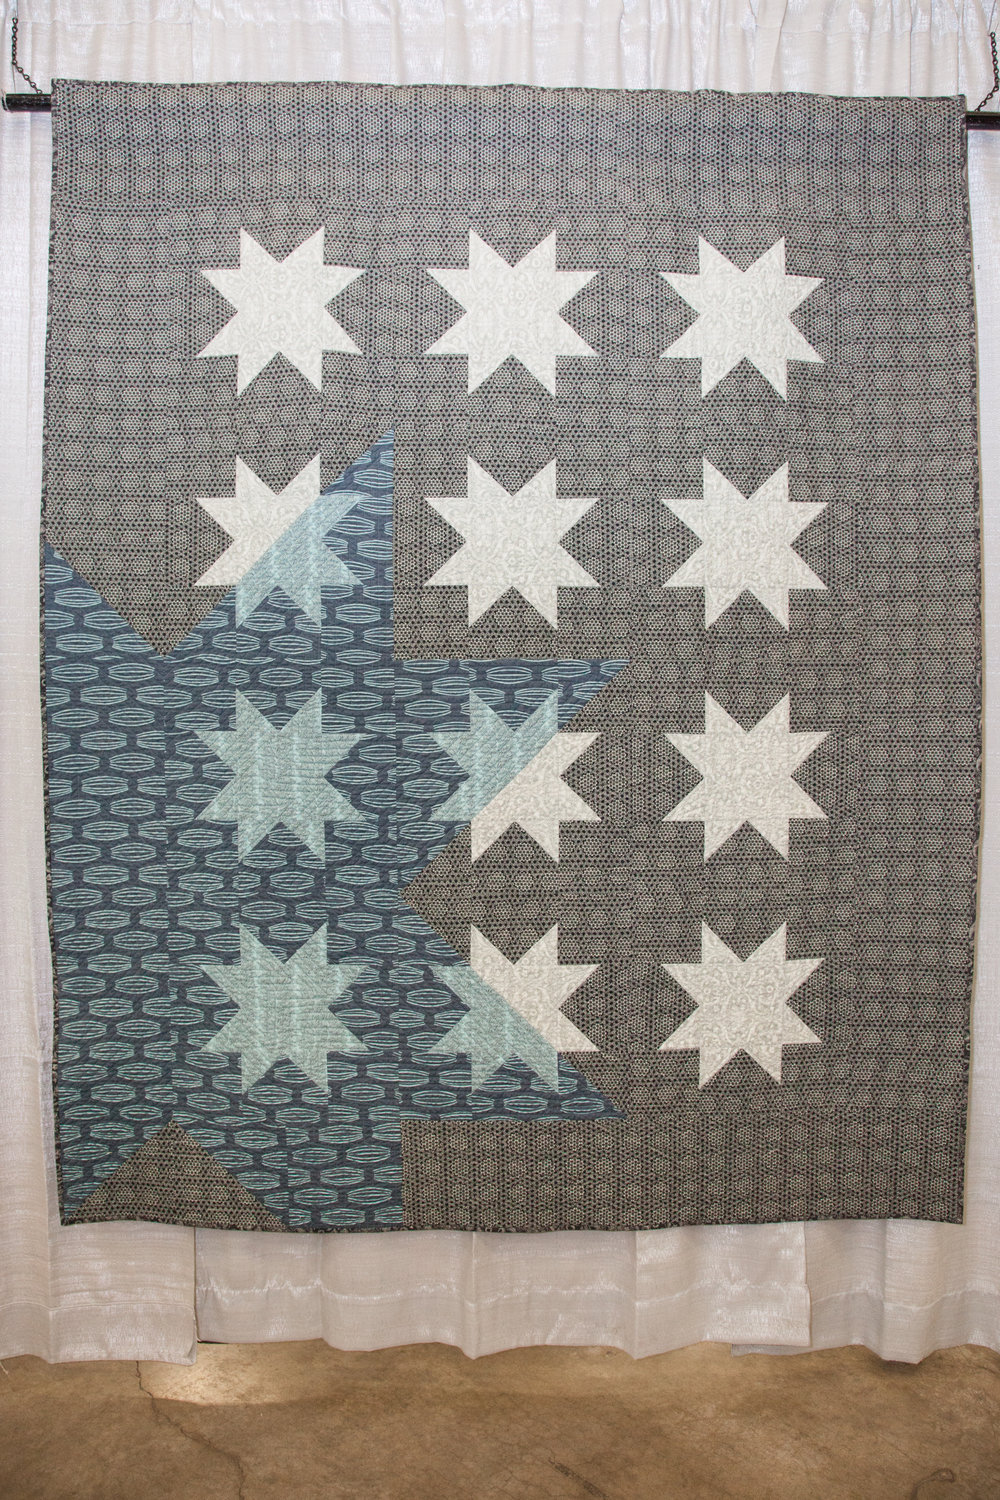 1st Place: New Star Rising  Pieced and quilted by Ben Darby